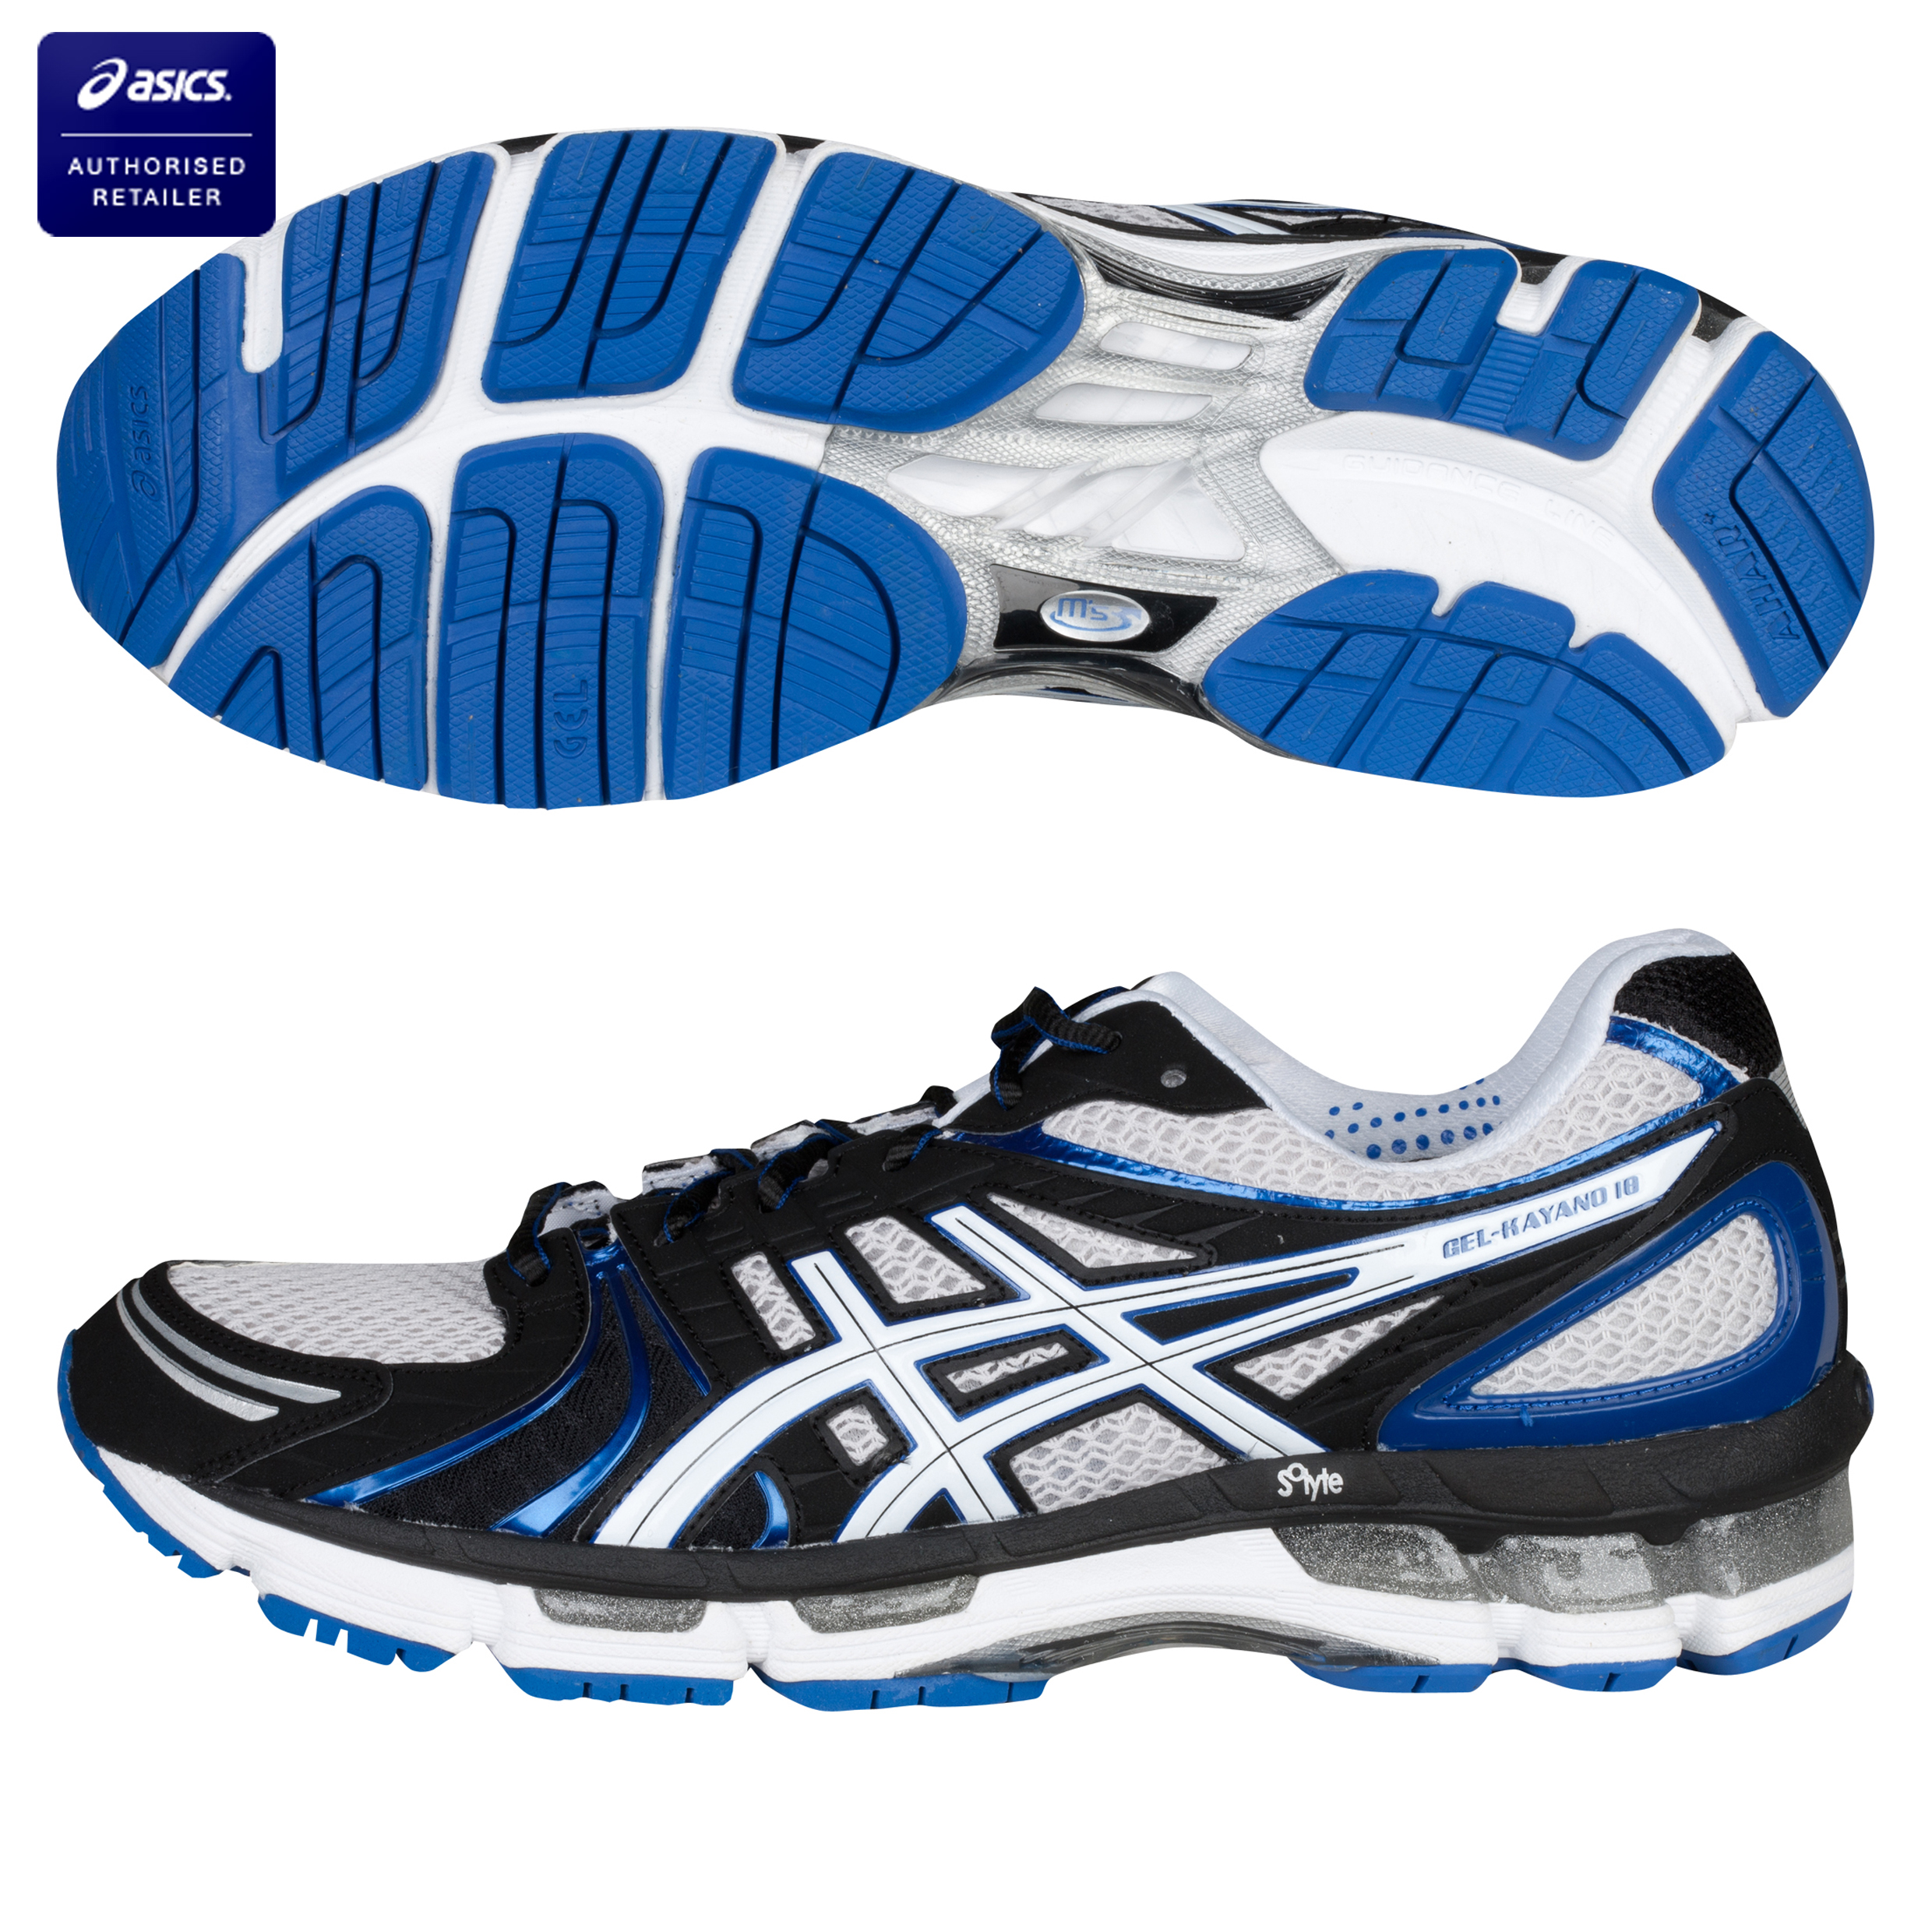 Asics Gel-Kayano 18 Trainers - Lightning/White/Royal